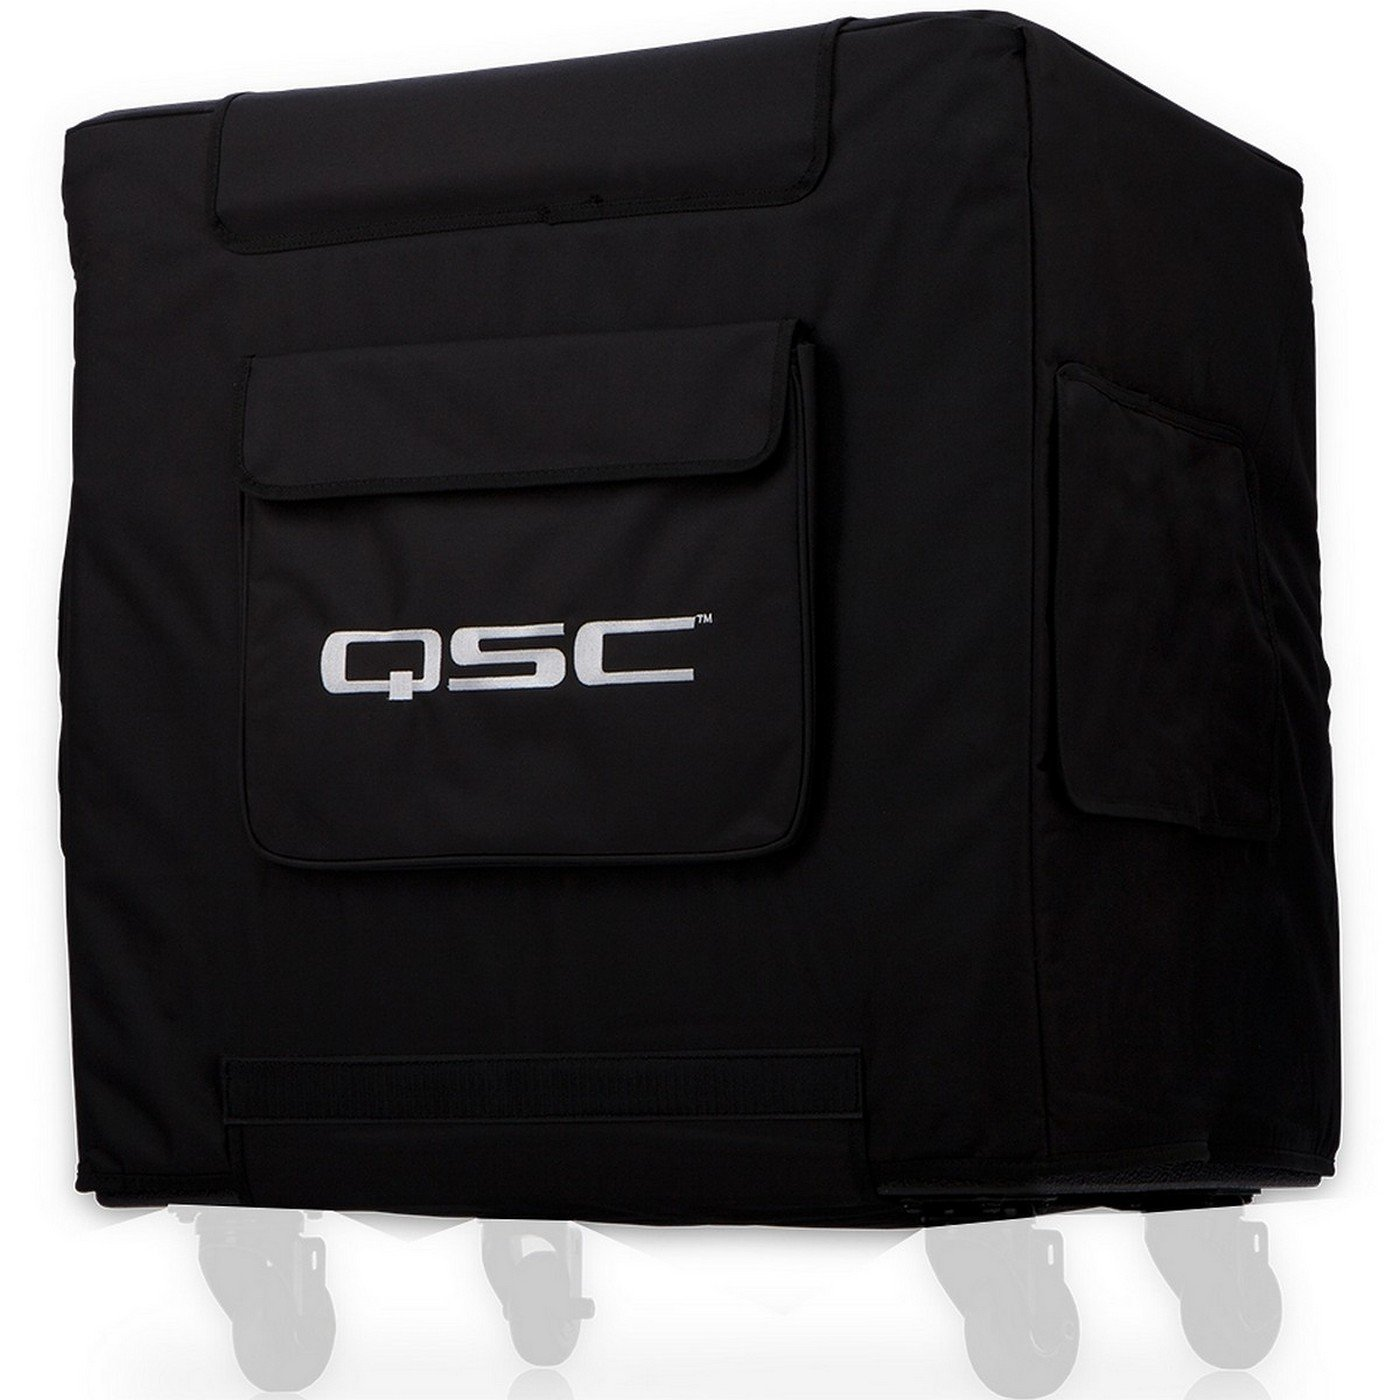 QSC KW181 COVER | Soft Paded Heavy Duty Nylon Cordura Cover for KW181